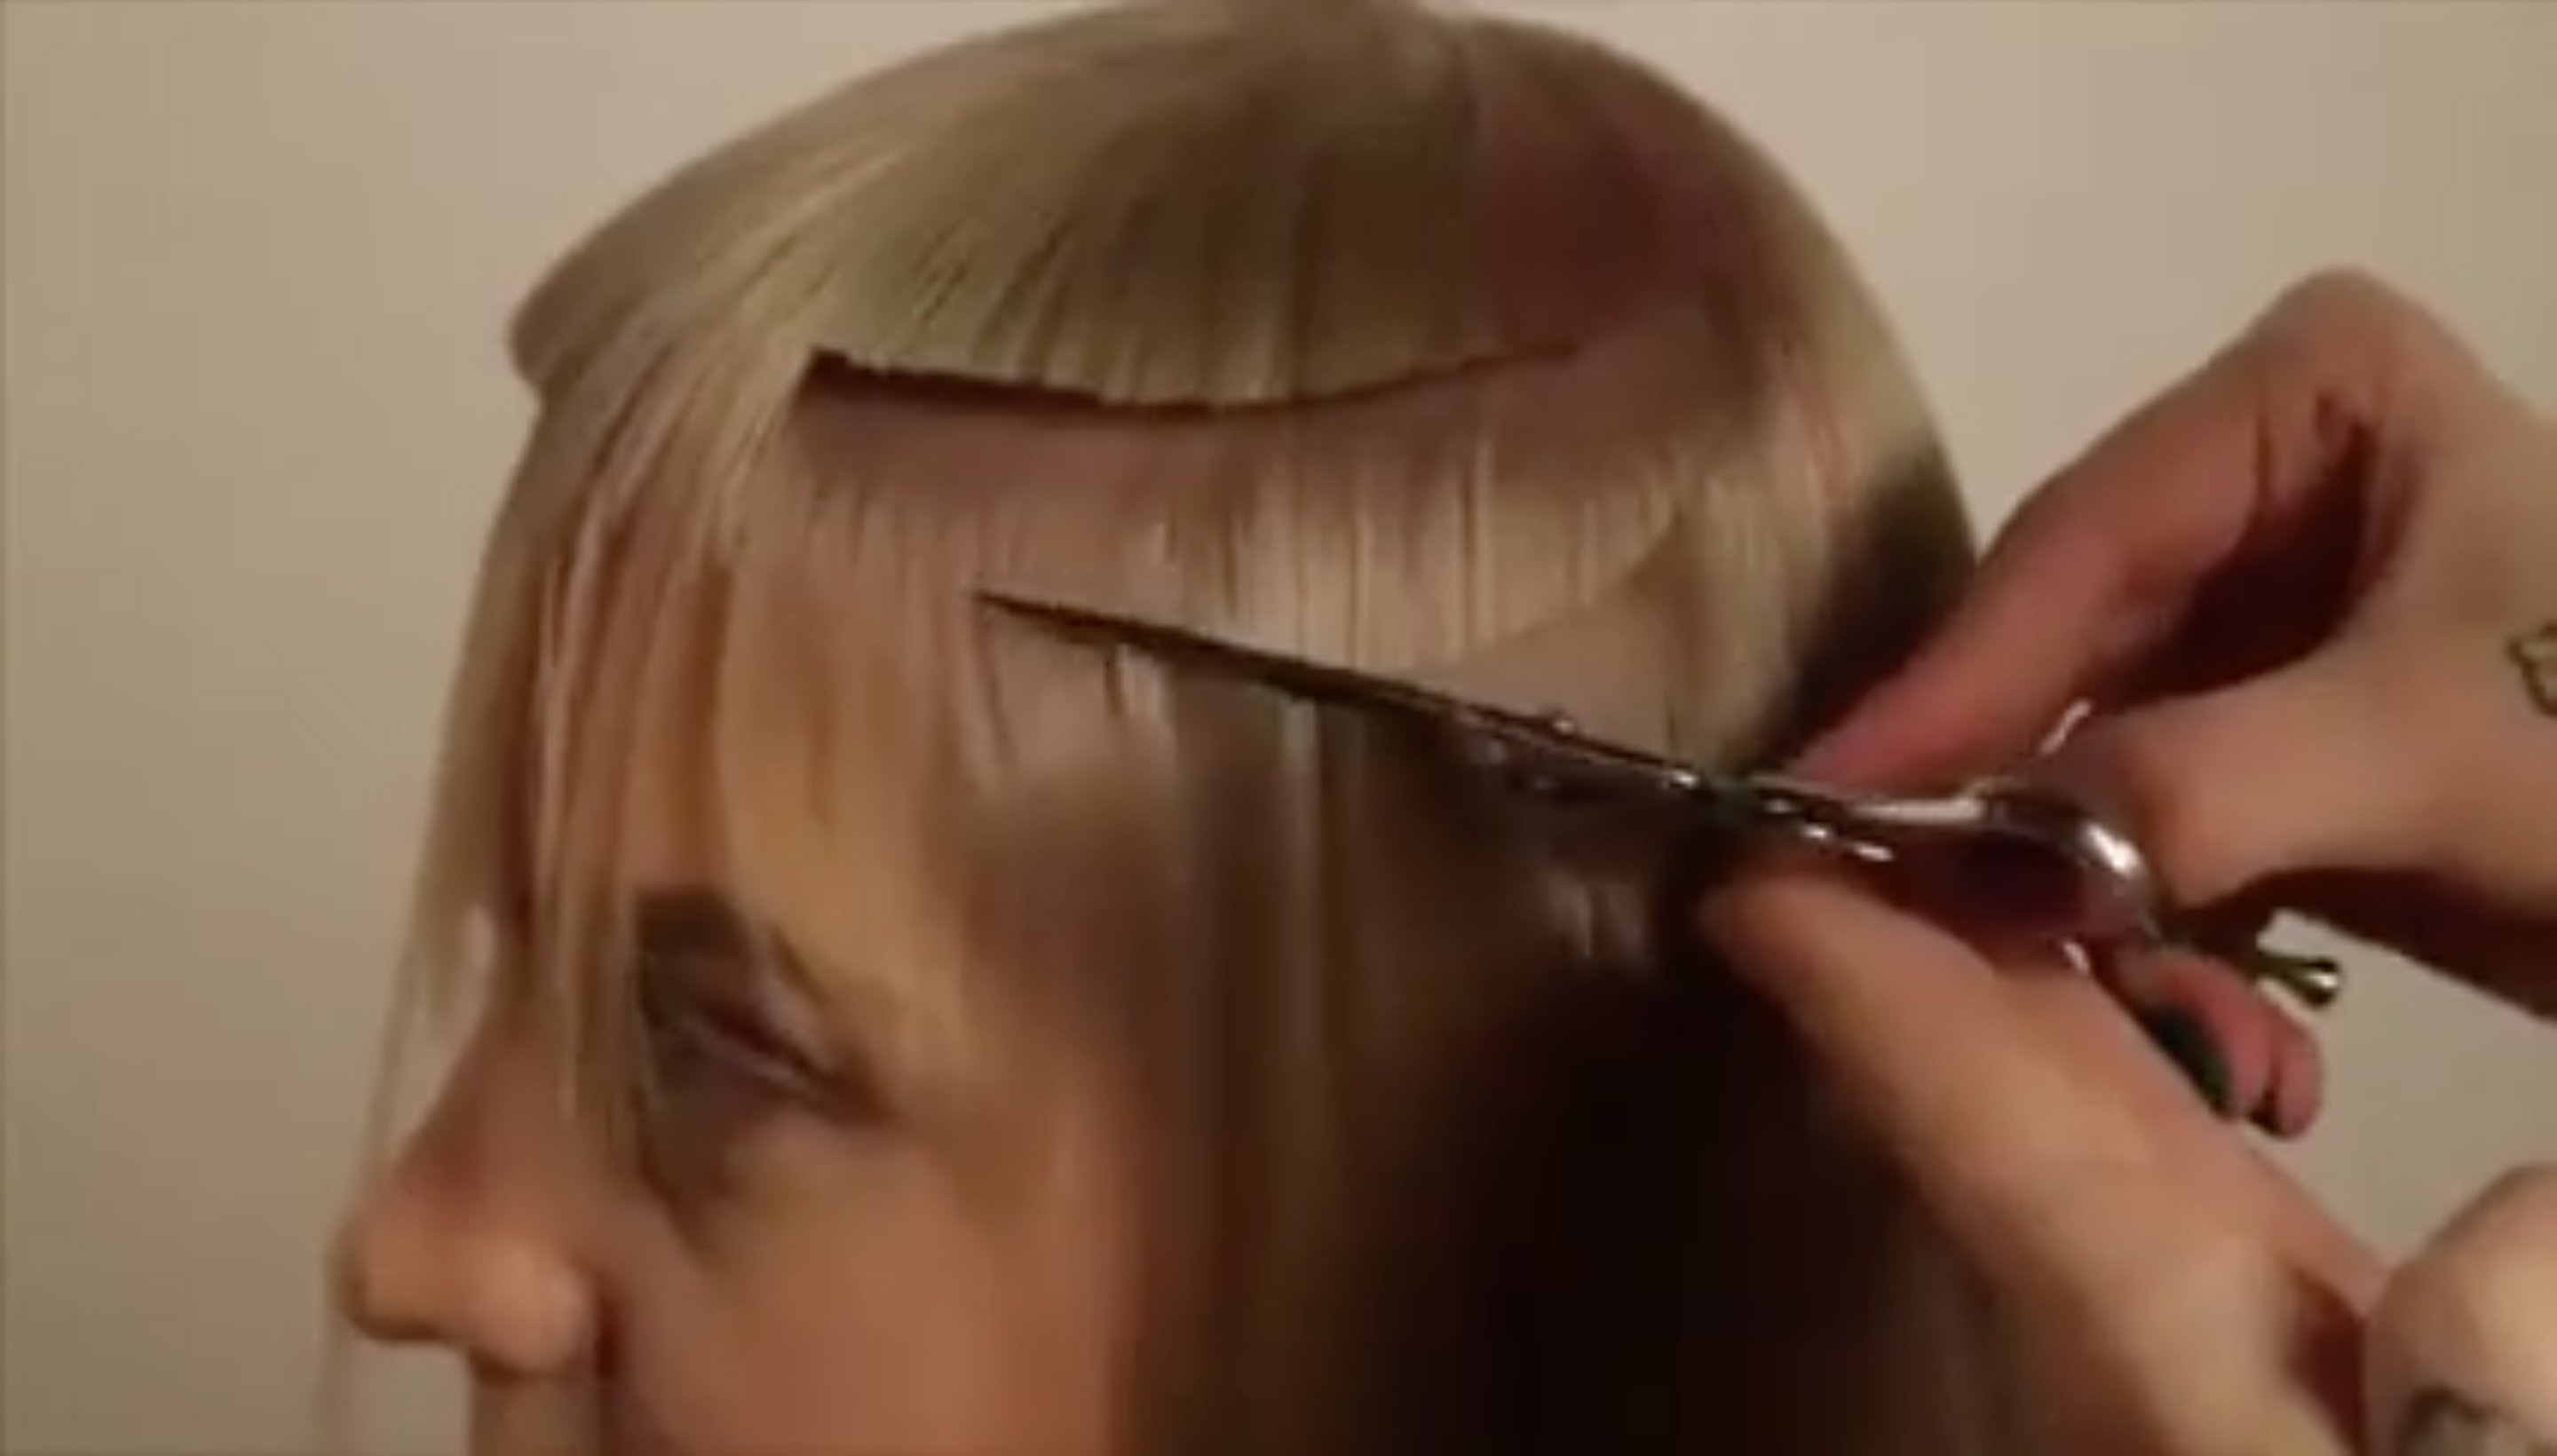 Girl getting a quirky haircut from Barbershapp. | Source: Facebook/Barbershapp